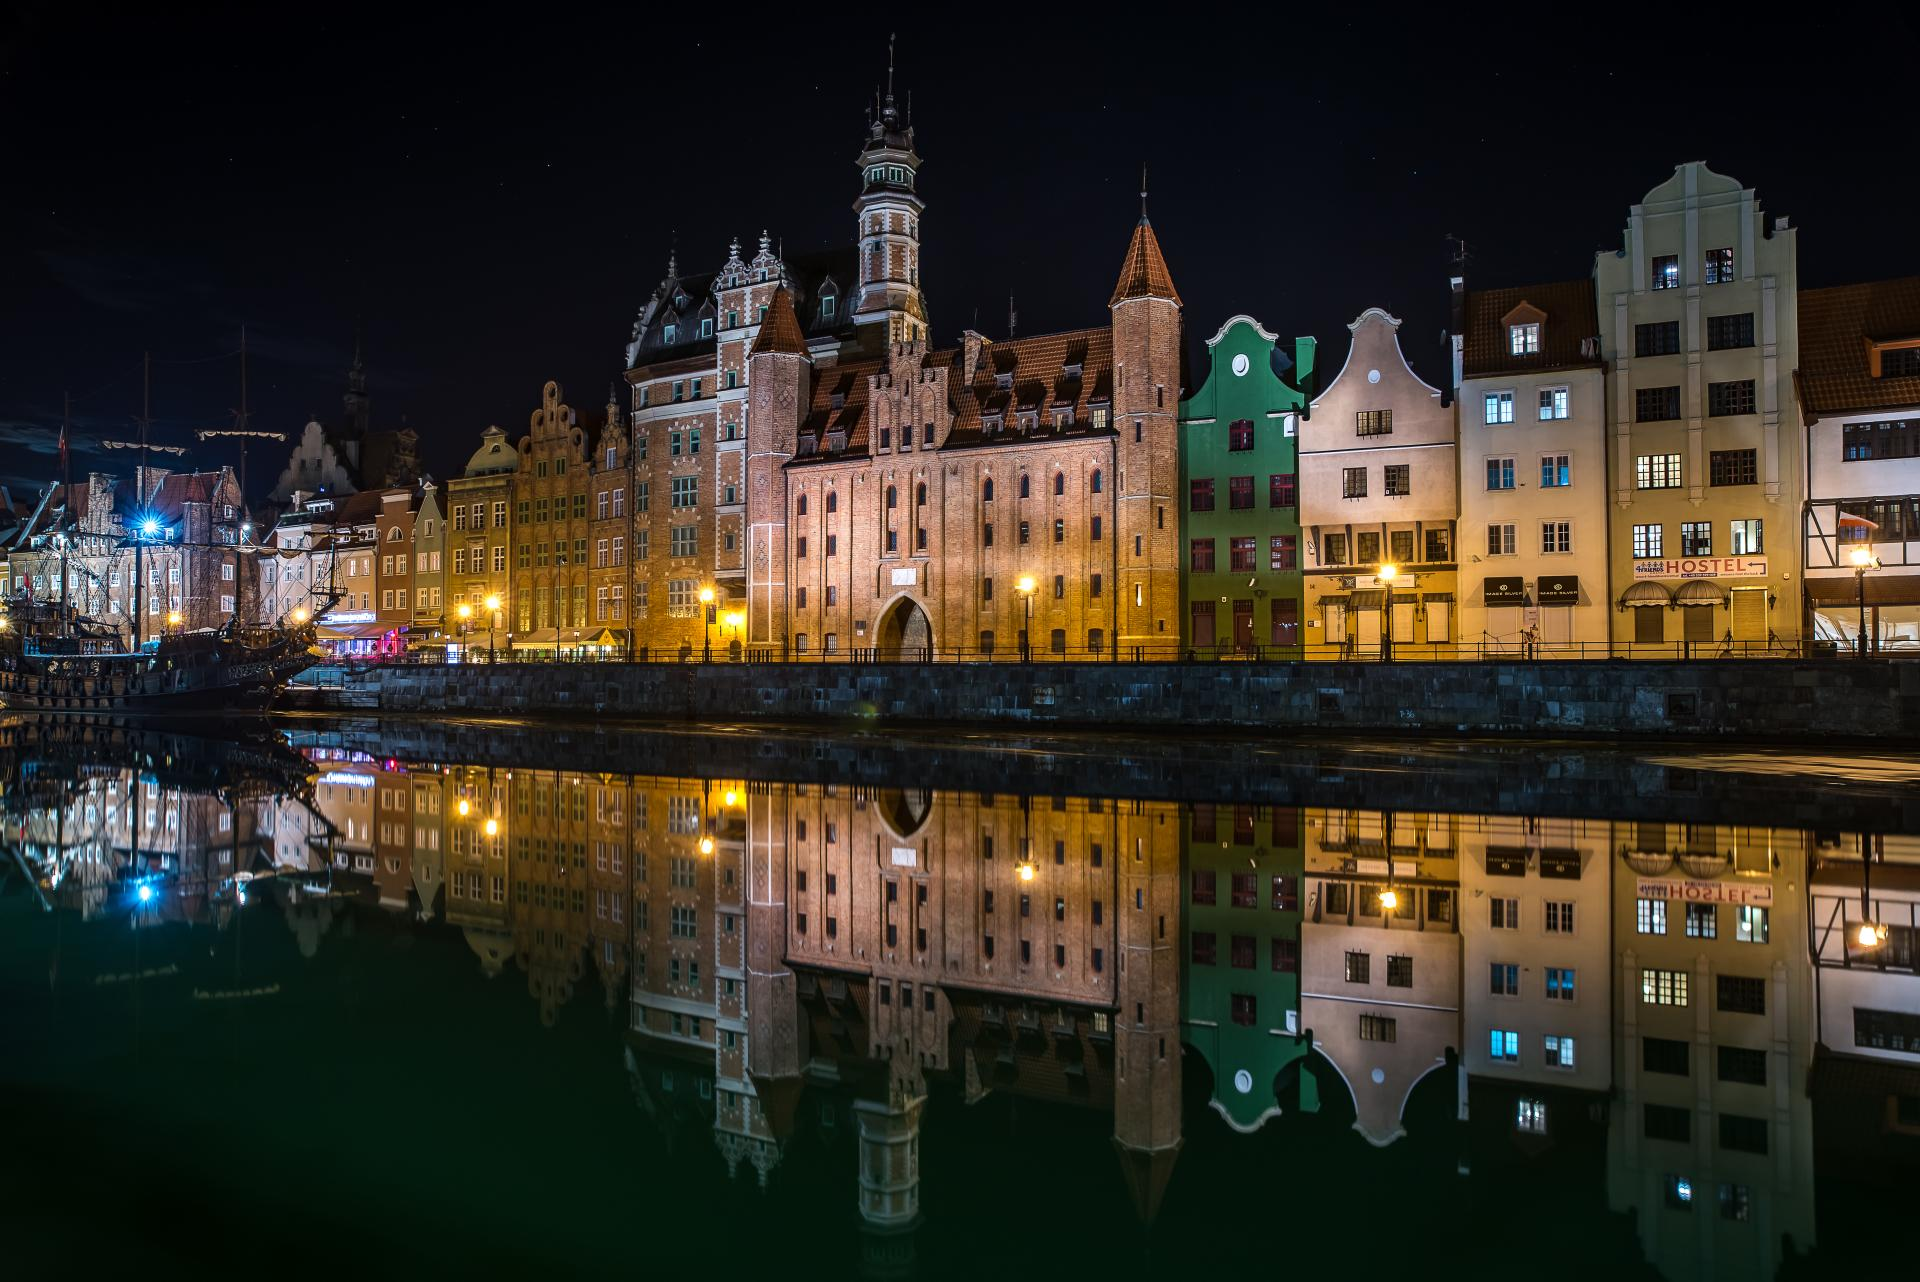 Gdansk wallpapers HD quality